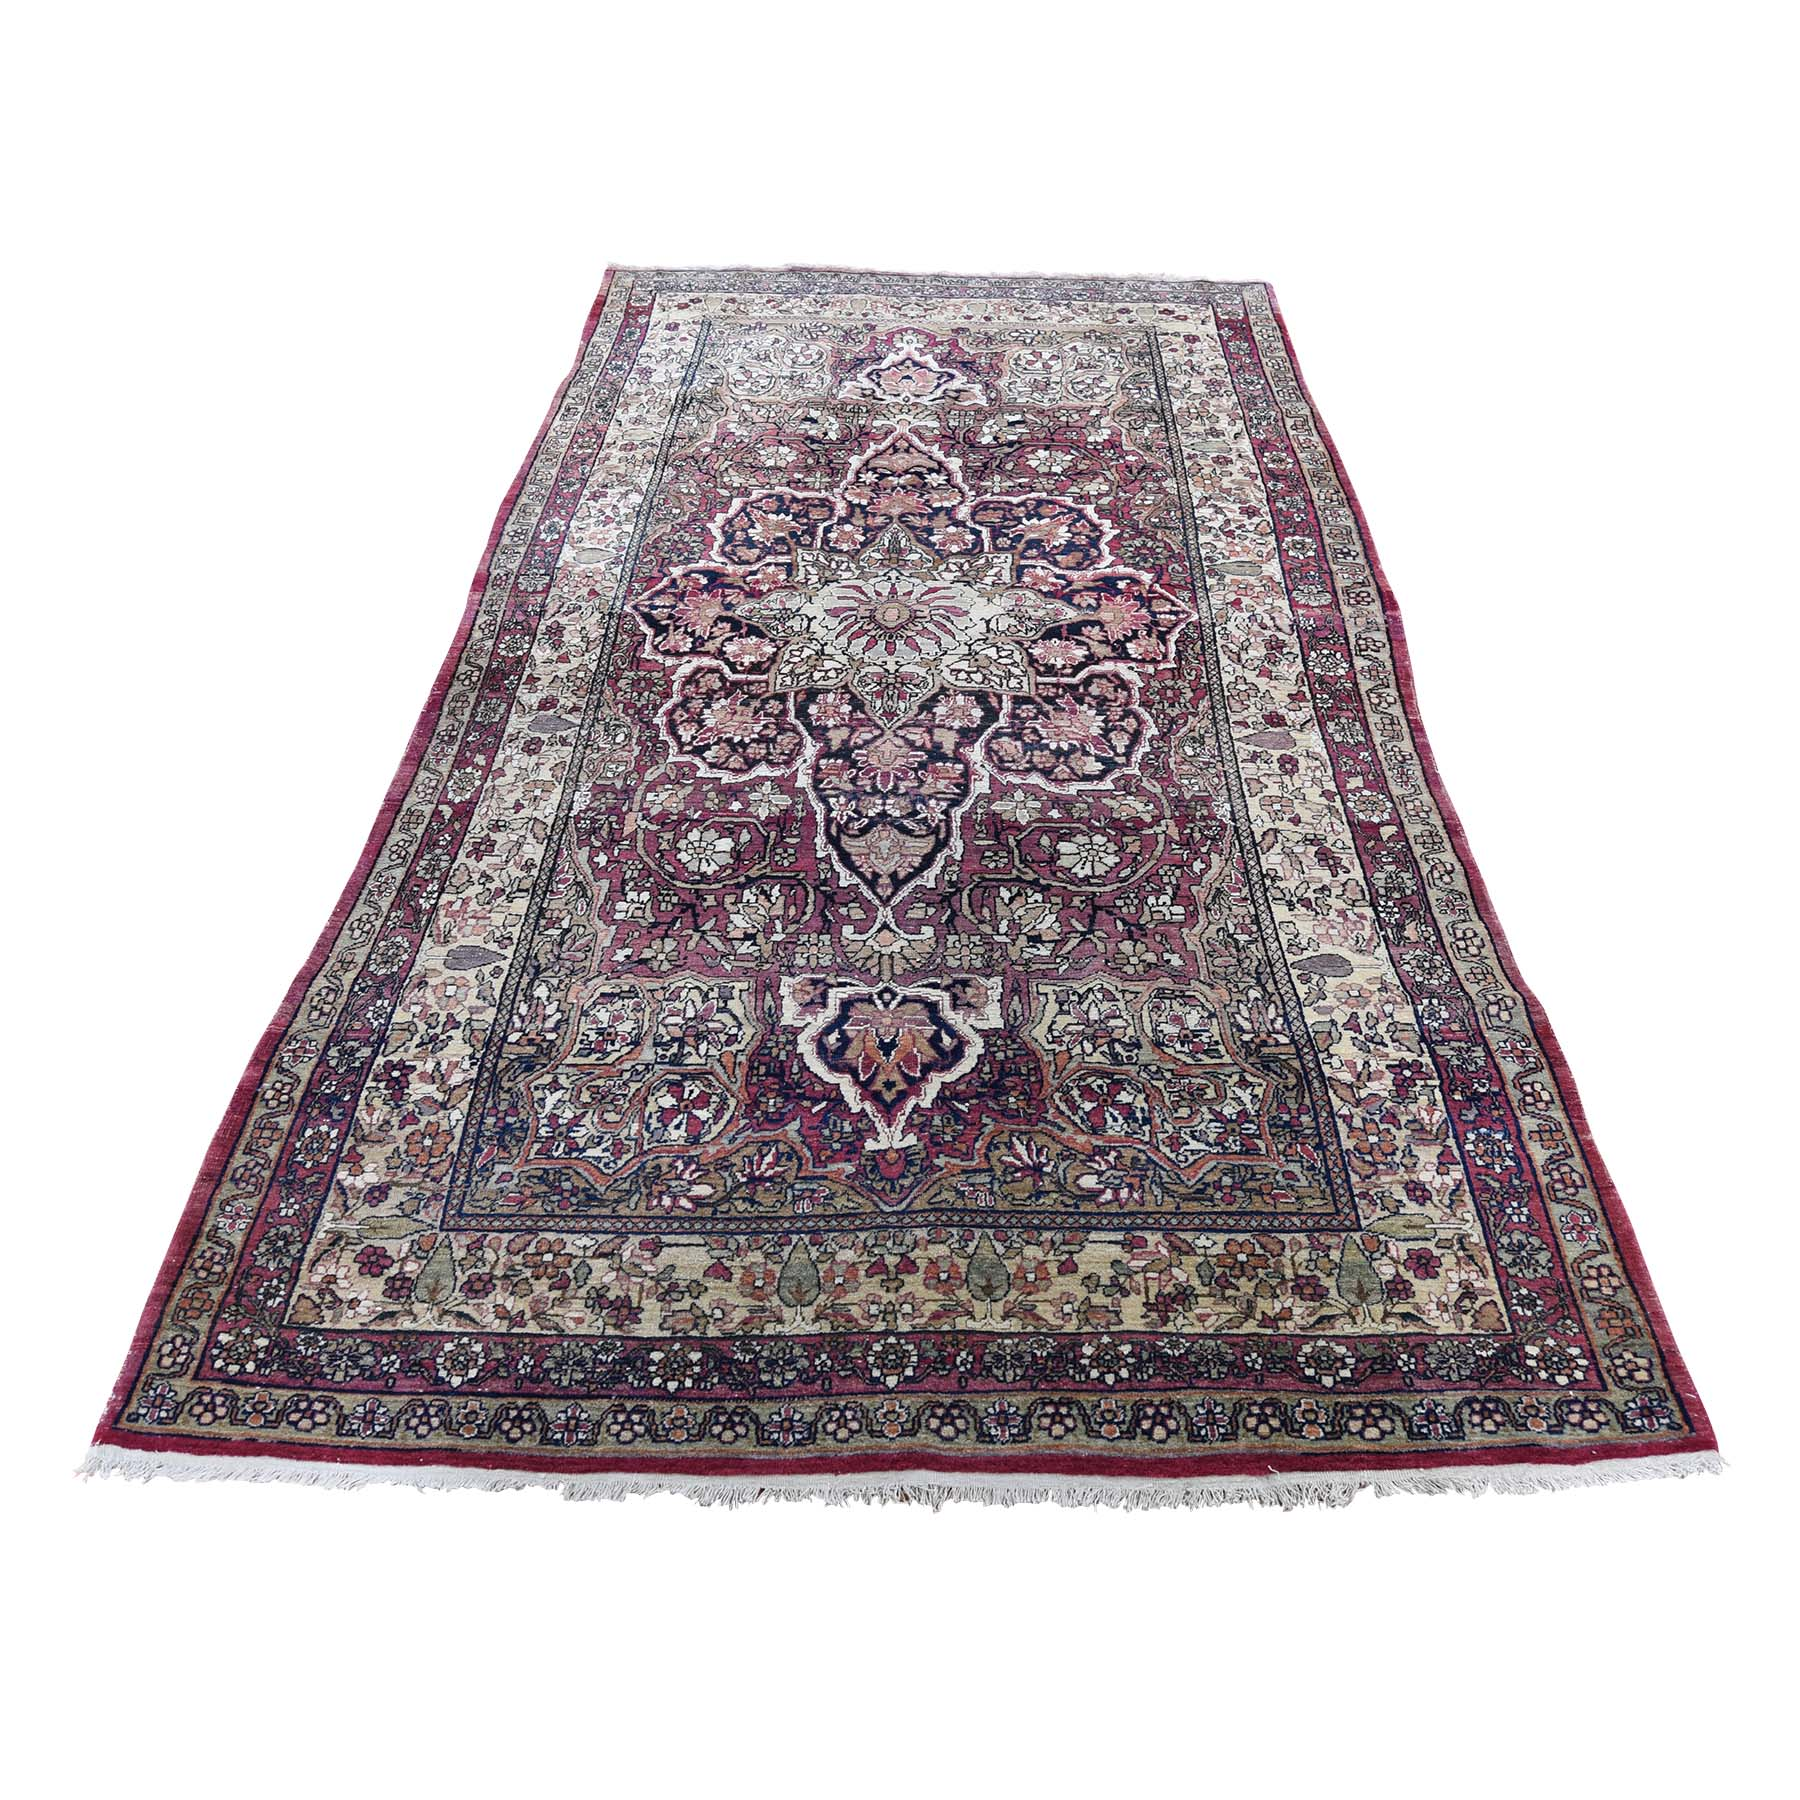 "3'10""X7'10"" Red Antique Persian Kerman Shah Good Condition Even Wear Soft Hand-Knotted Oriental Rug moade9a9"